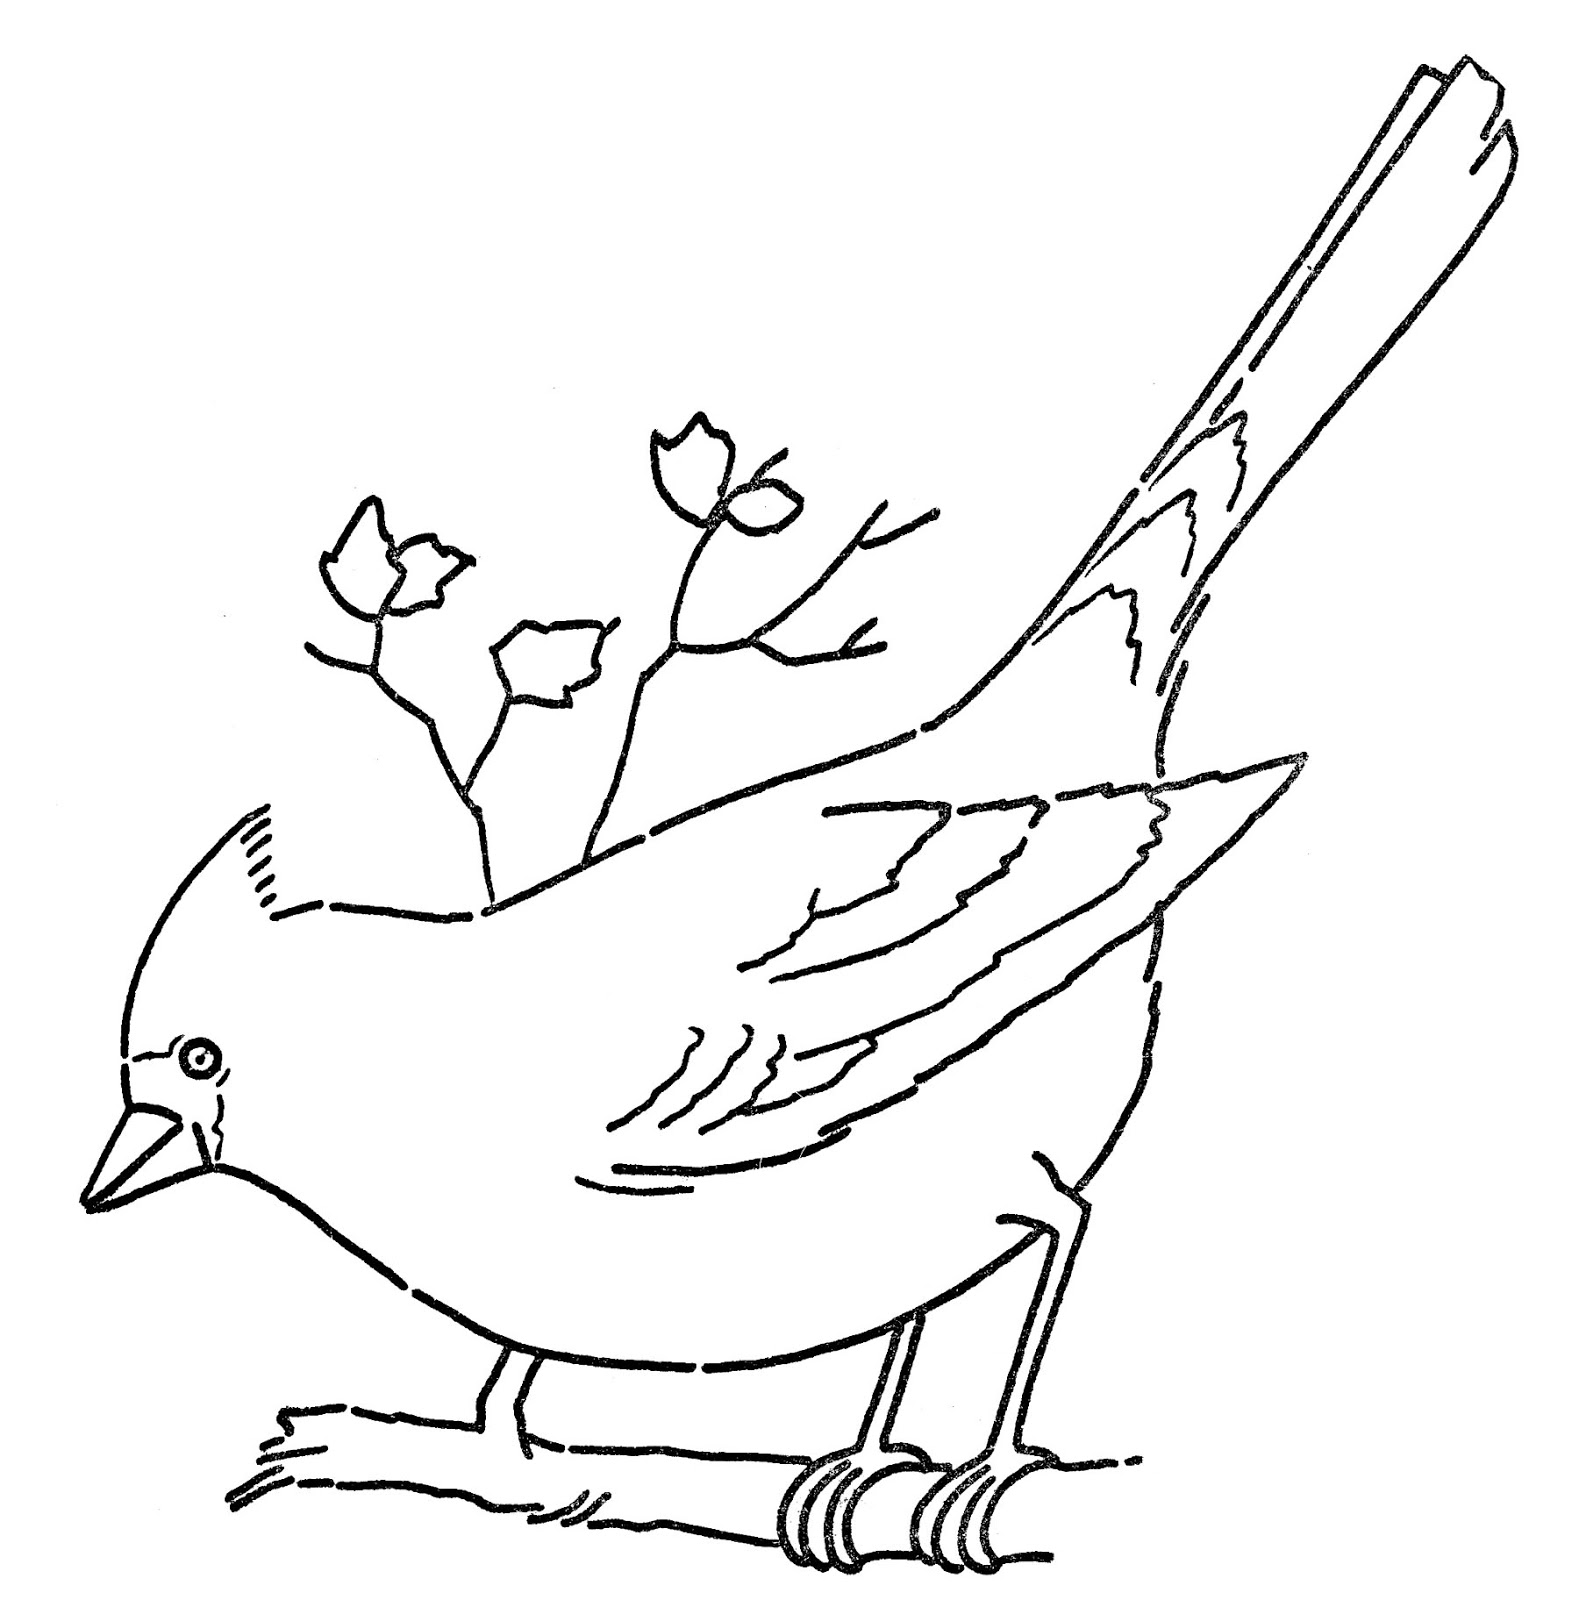 Line Art Graphics : Line art coloring page cardinal on branch the